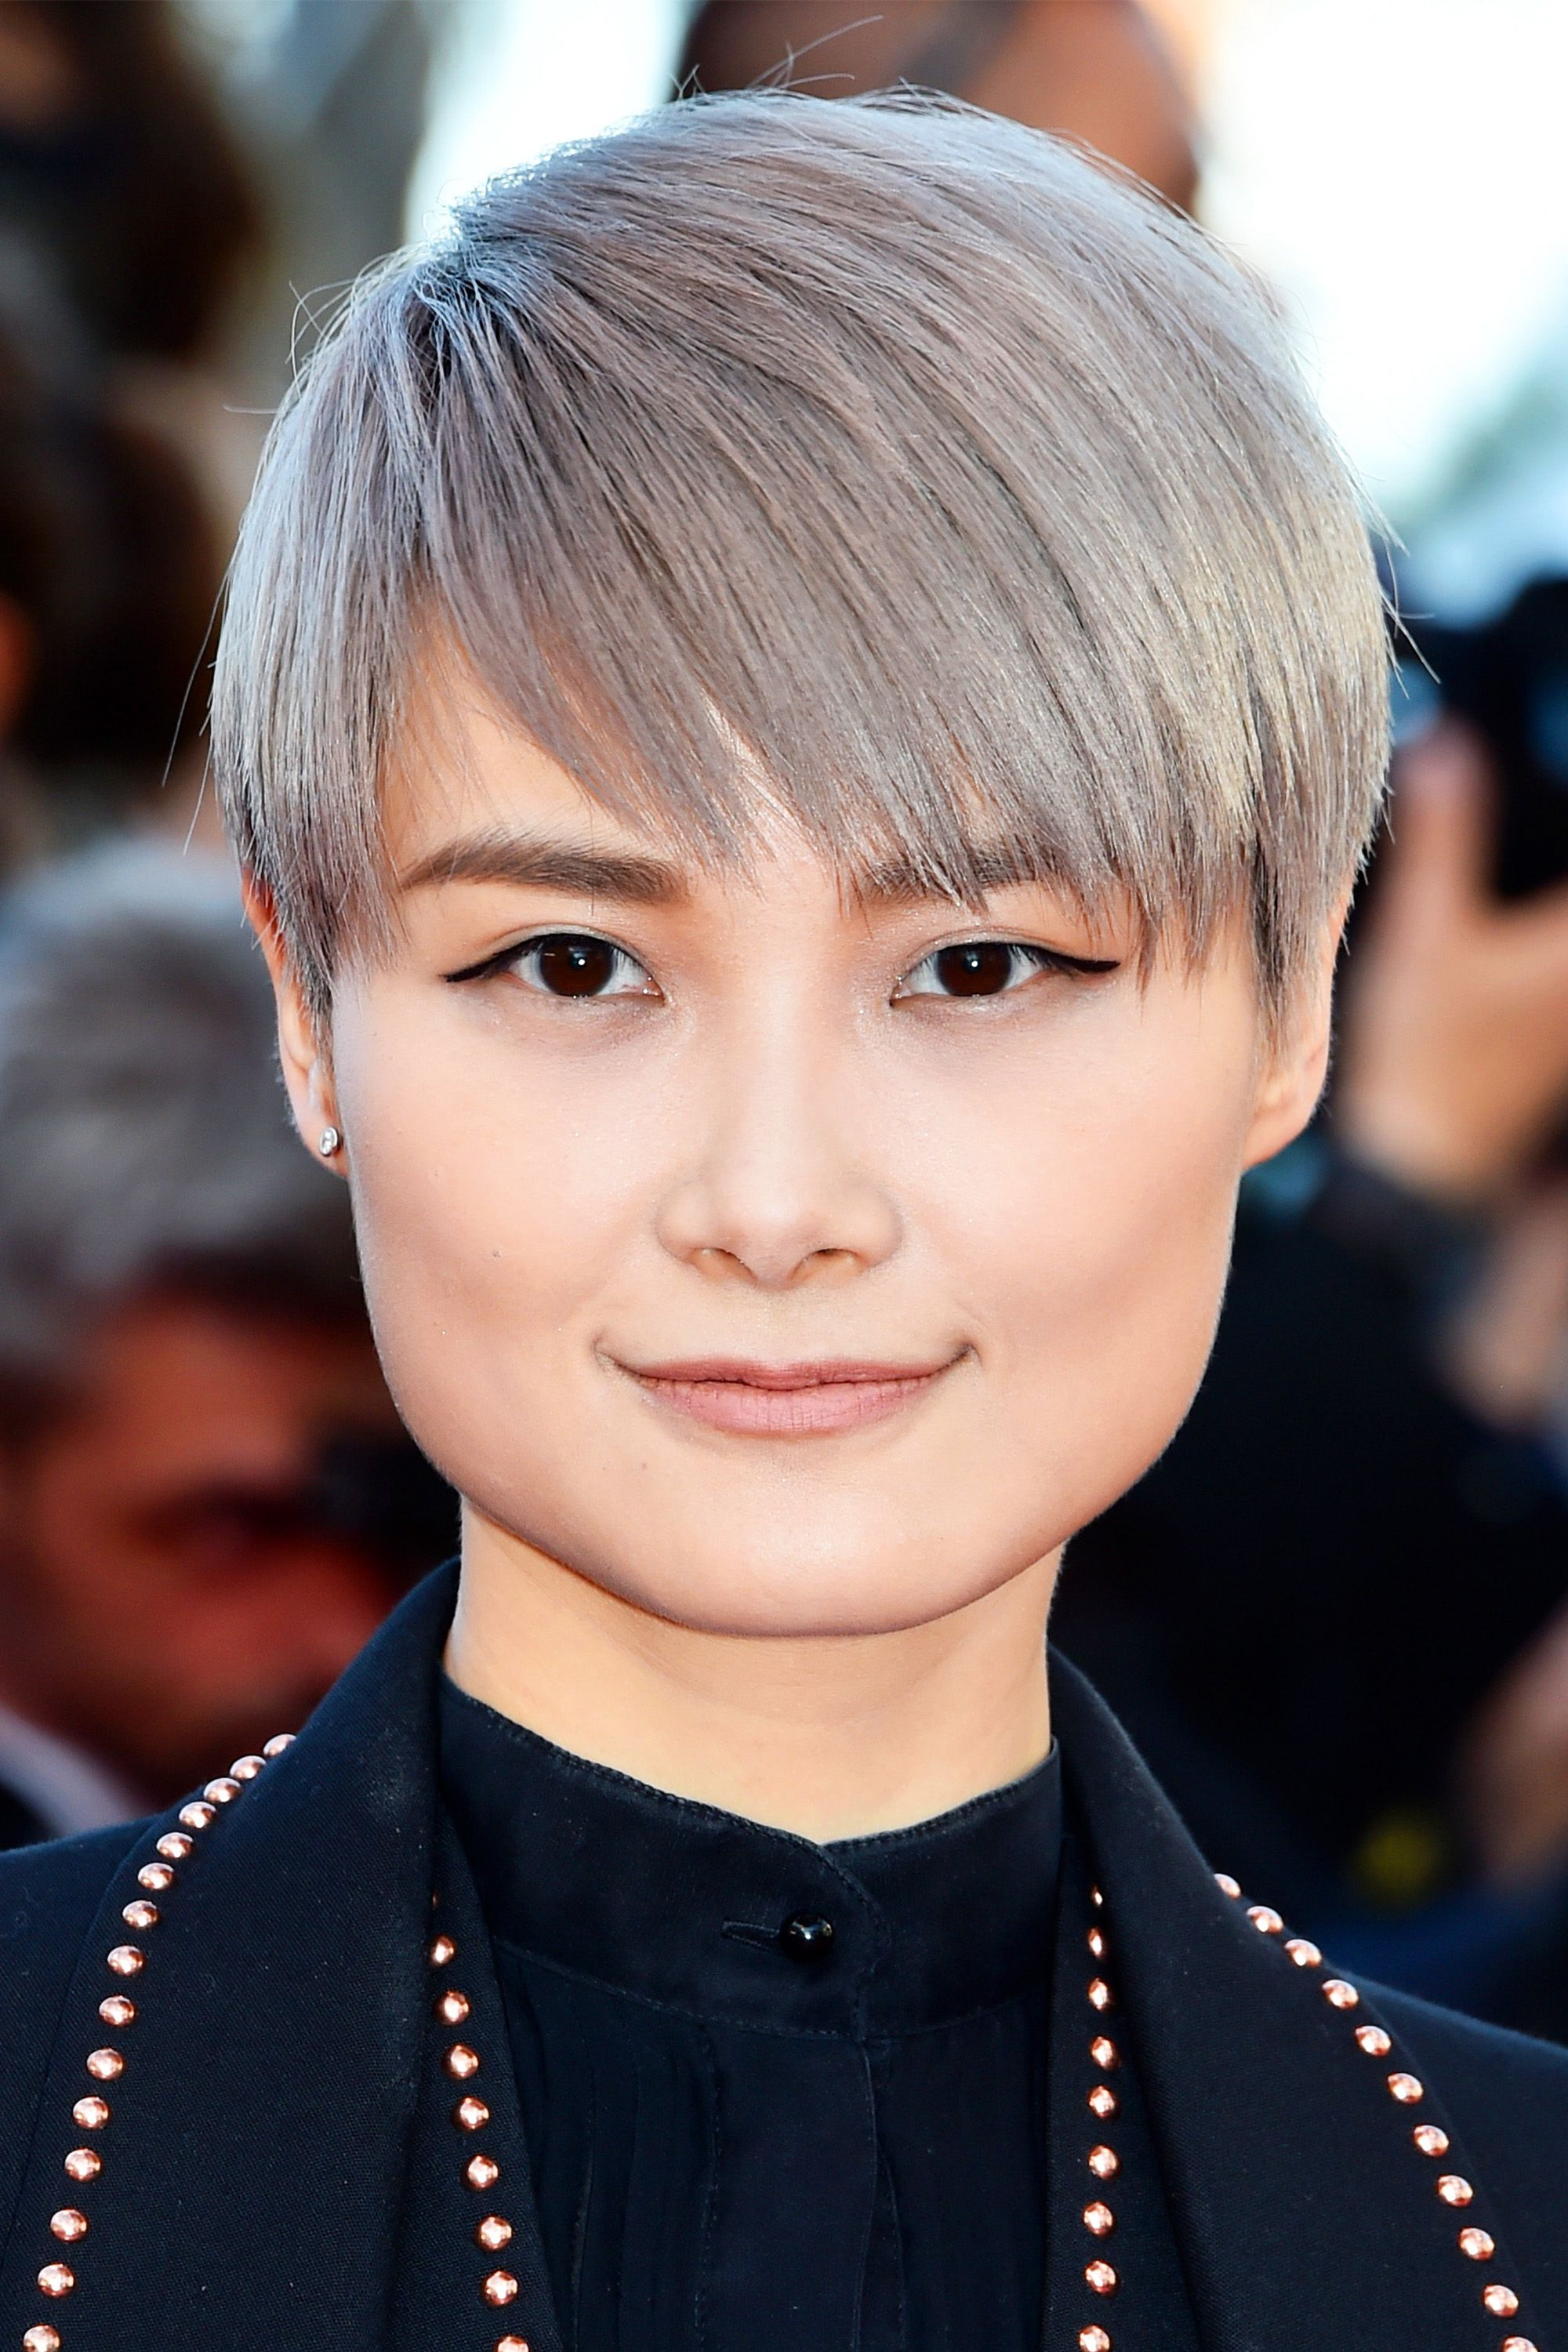 44 Best Short Hairstyles And Haircuts Of 2018 – Cute Hairstyles For For Cute Celebrity Short Haircuts (View 10 of 25)